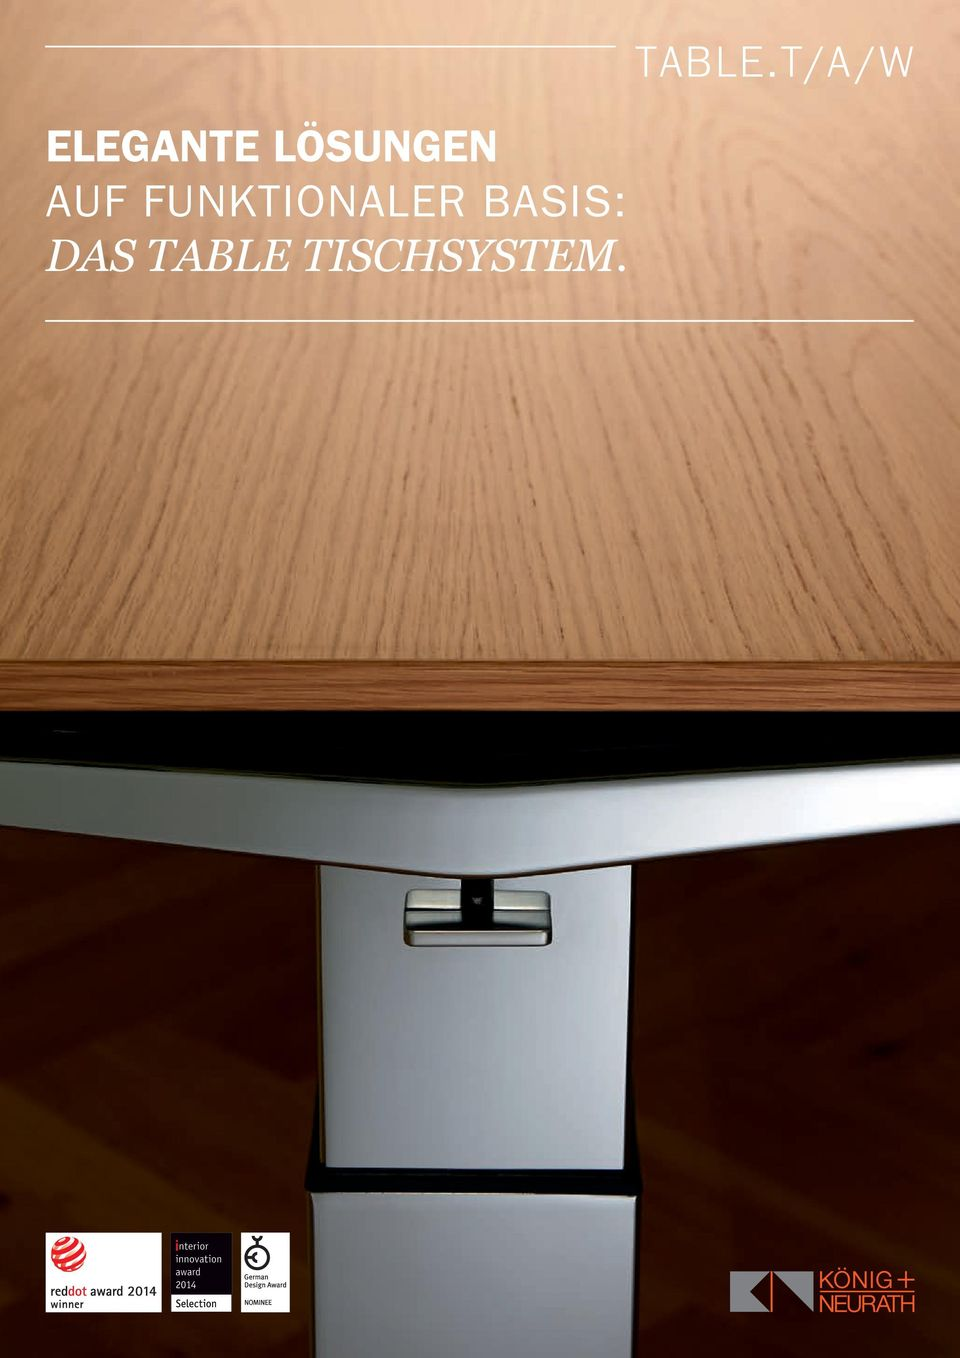 BASIS: DAS TABLE